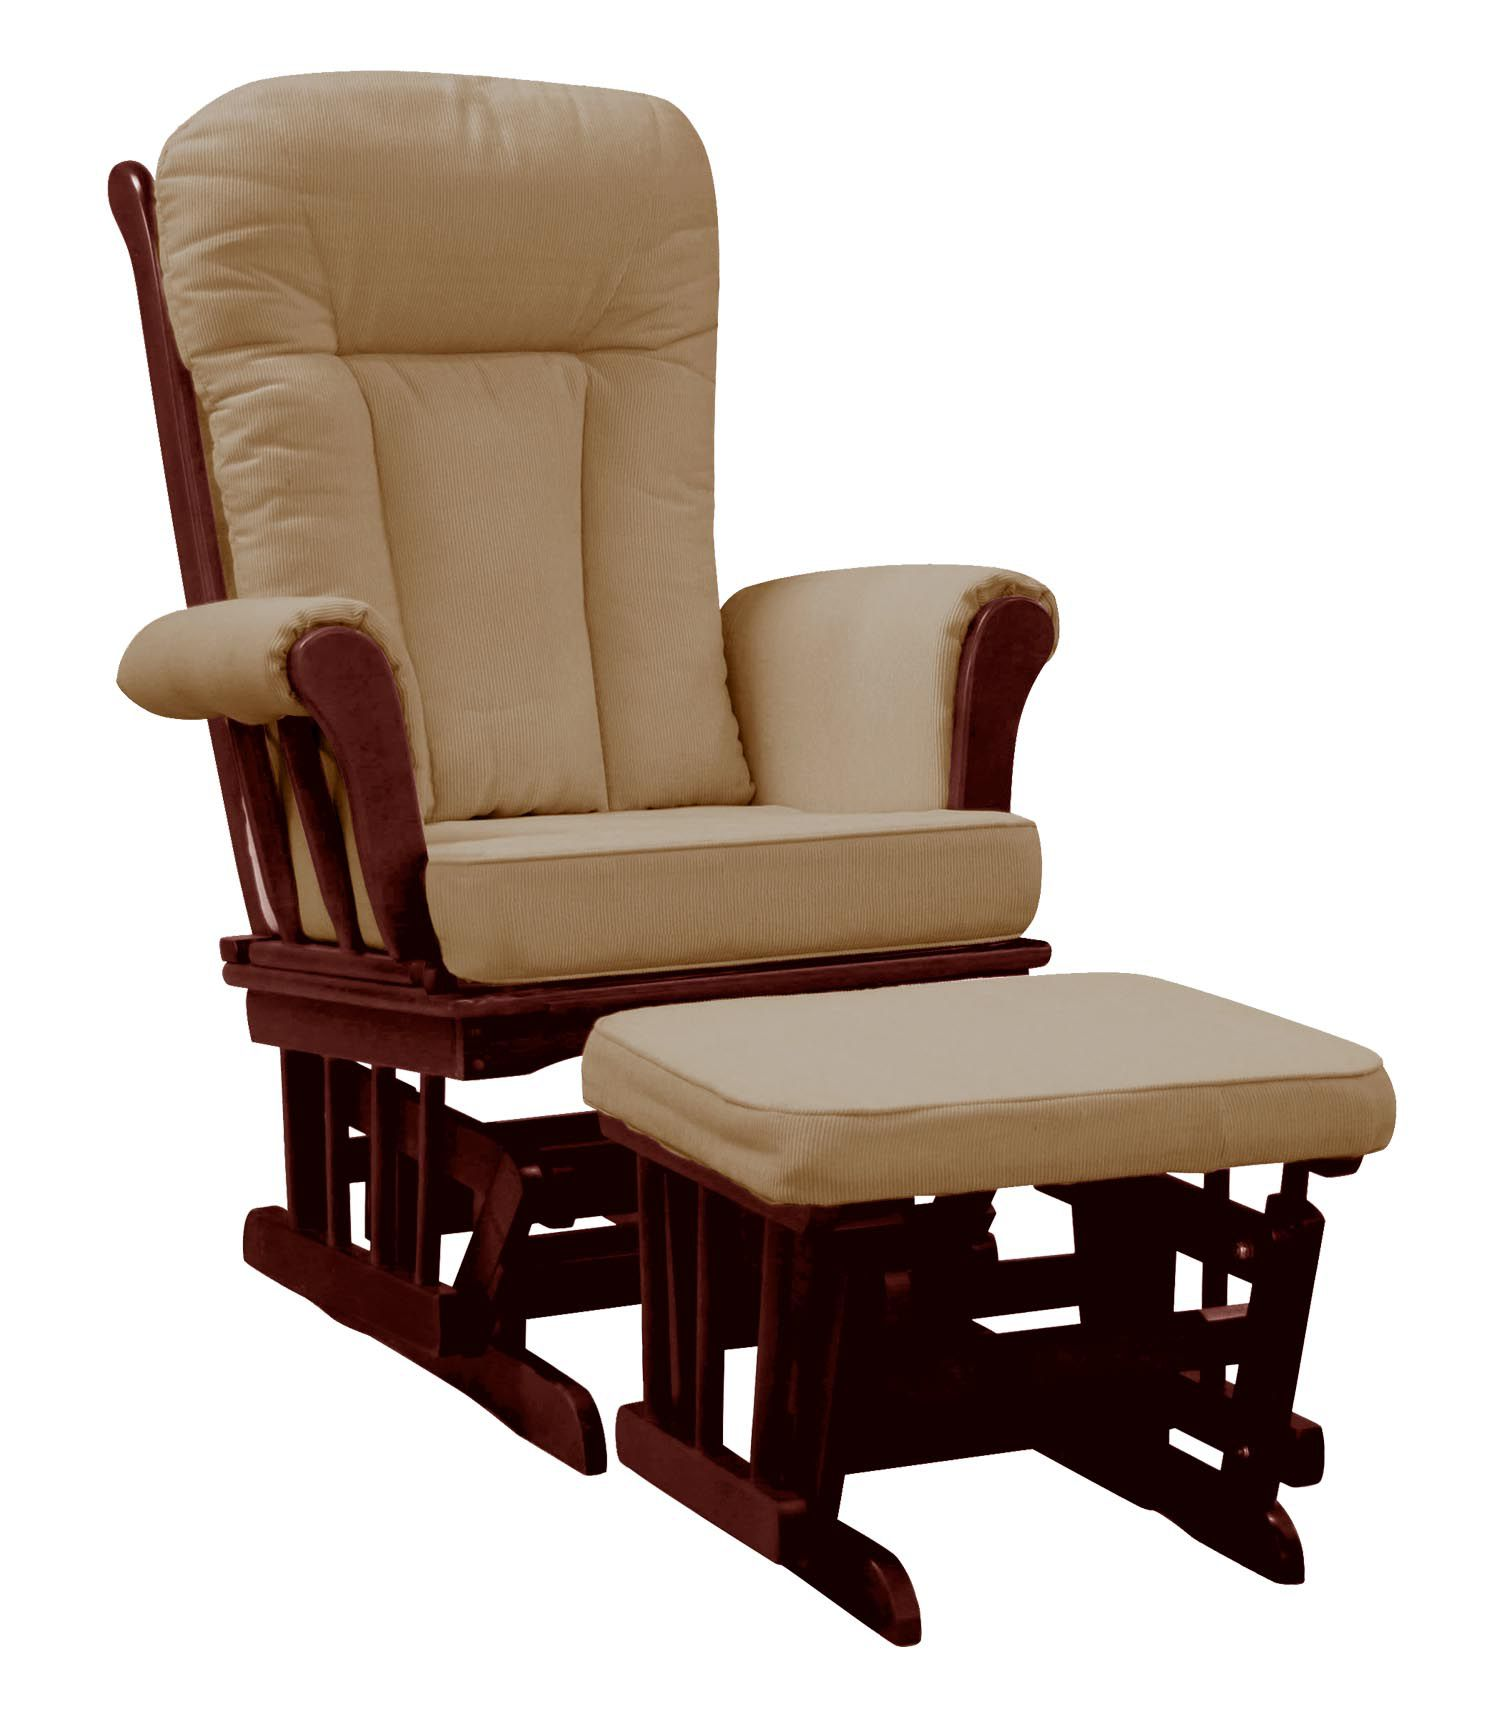 Gliding Rocking Chair Dream On Me Elysium Glider Rocker And Matching Ottoman